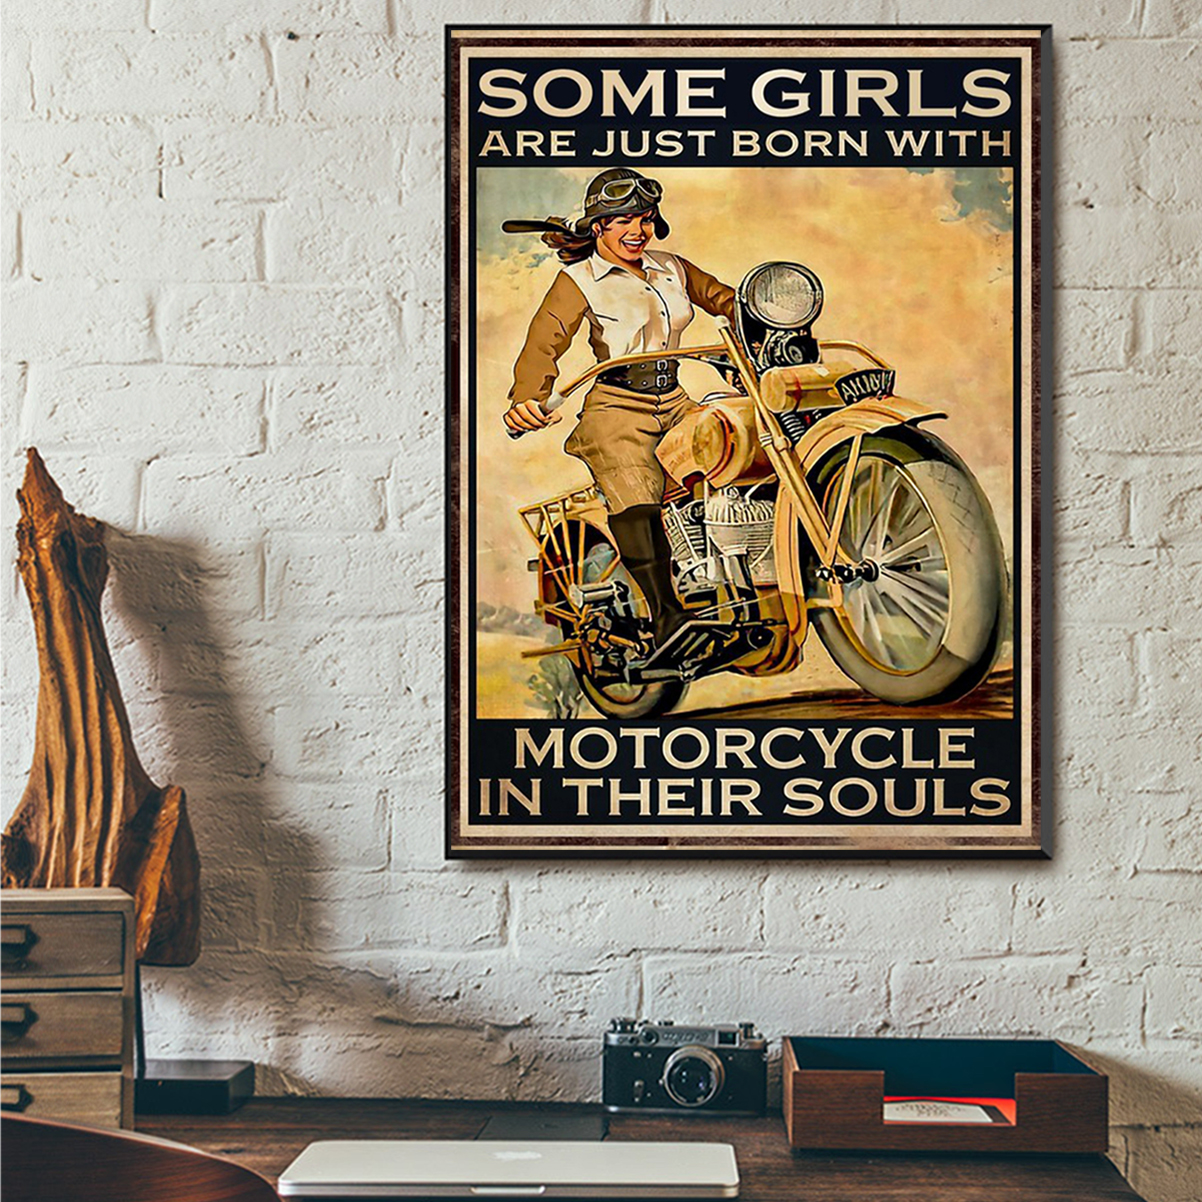 Some girls are just born with motorcycle in their souls poster A3